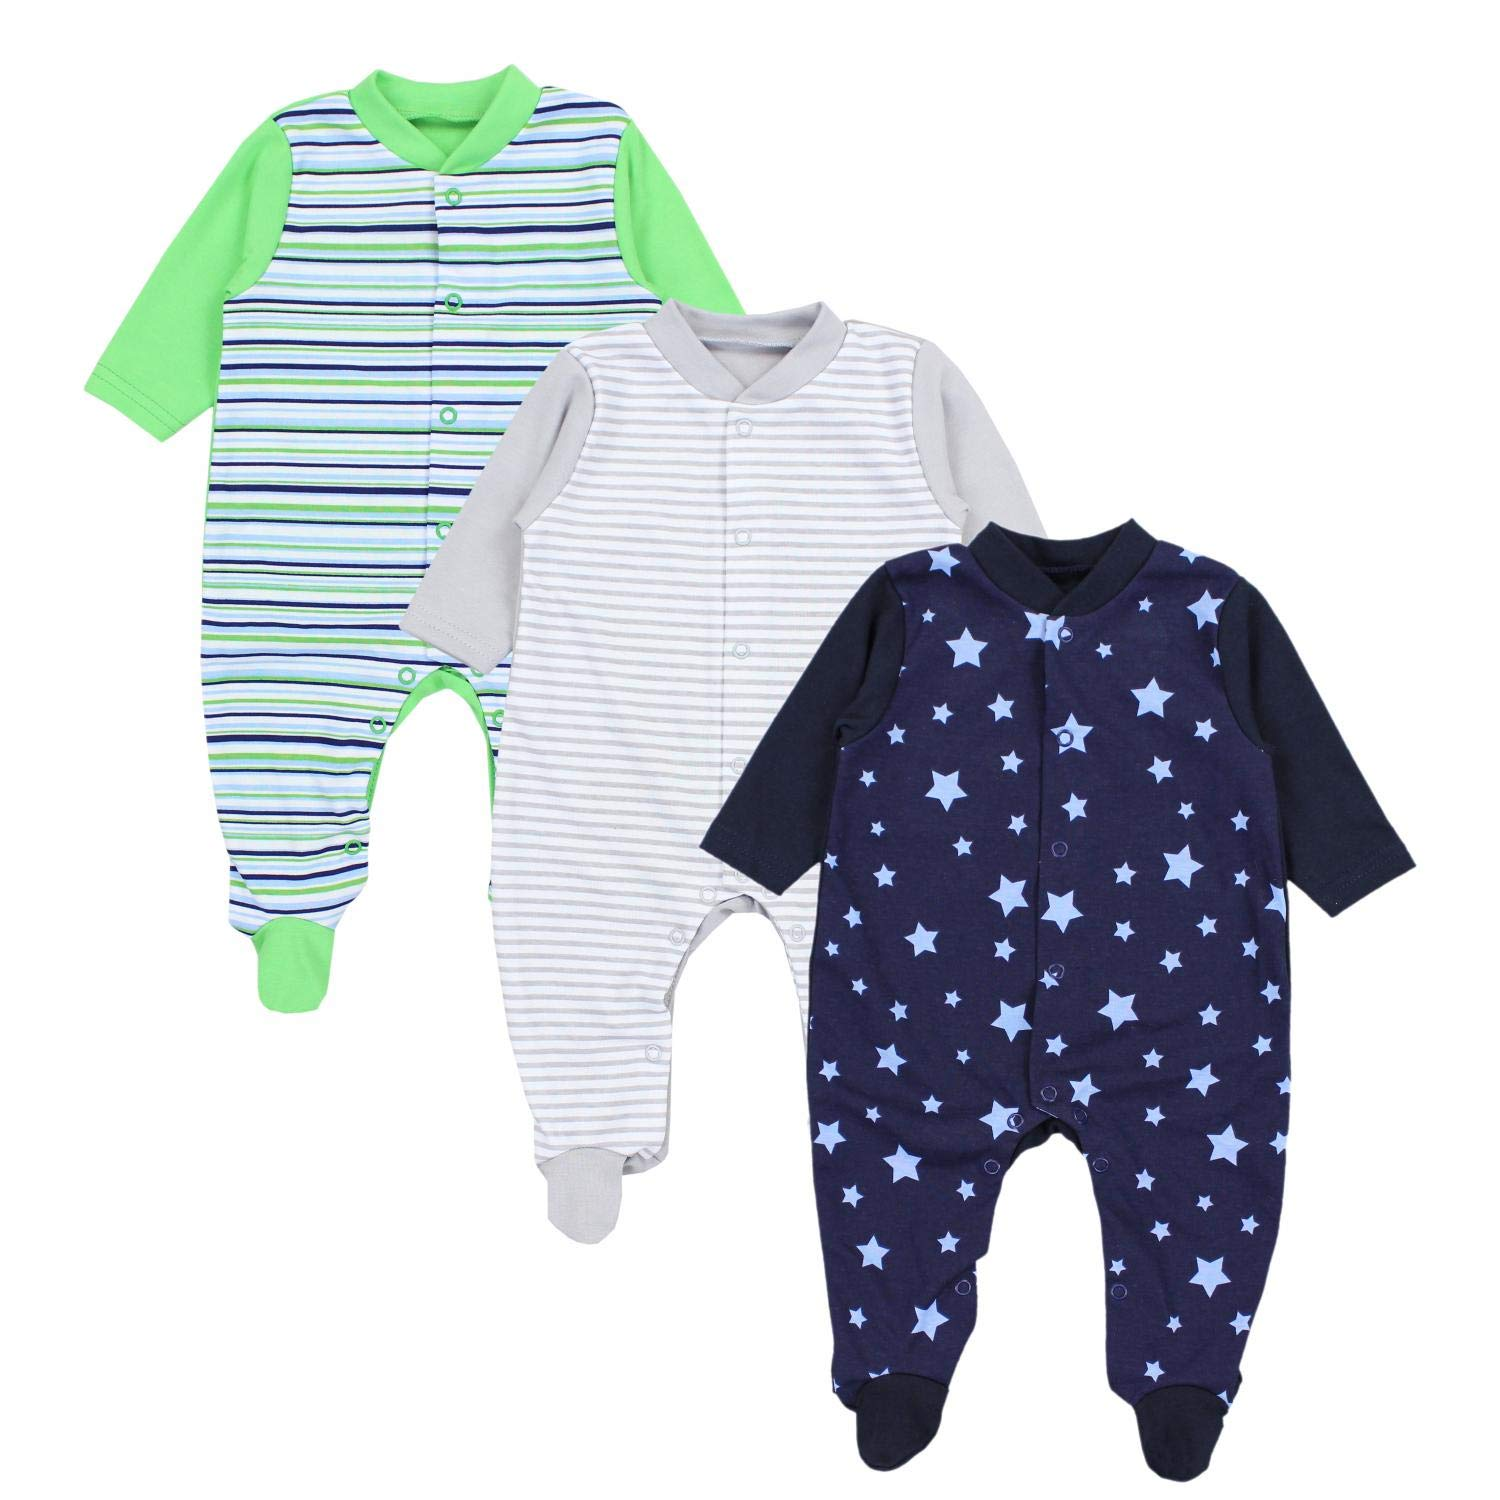 TupTam Baby Boys Sleepsuit with Feet Pack of 3